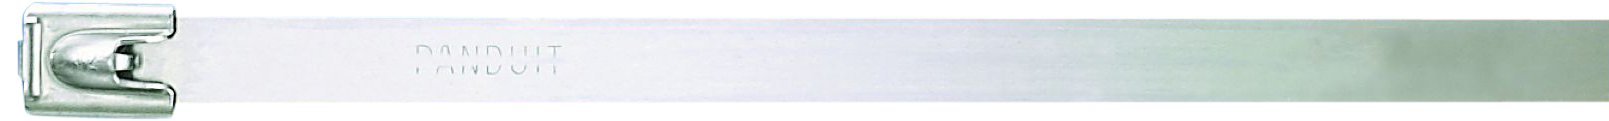 Panduit MLT4H-LP316 MLT Self-Locking Cable Tie, Heavy, 316 Stainless Steel, 14.3-Inch Length (50-Pack) by Panduit (Image #2)